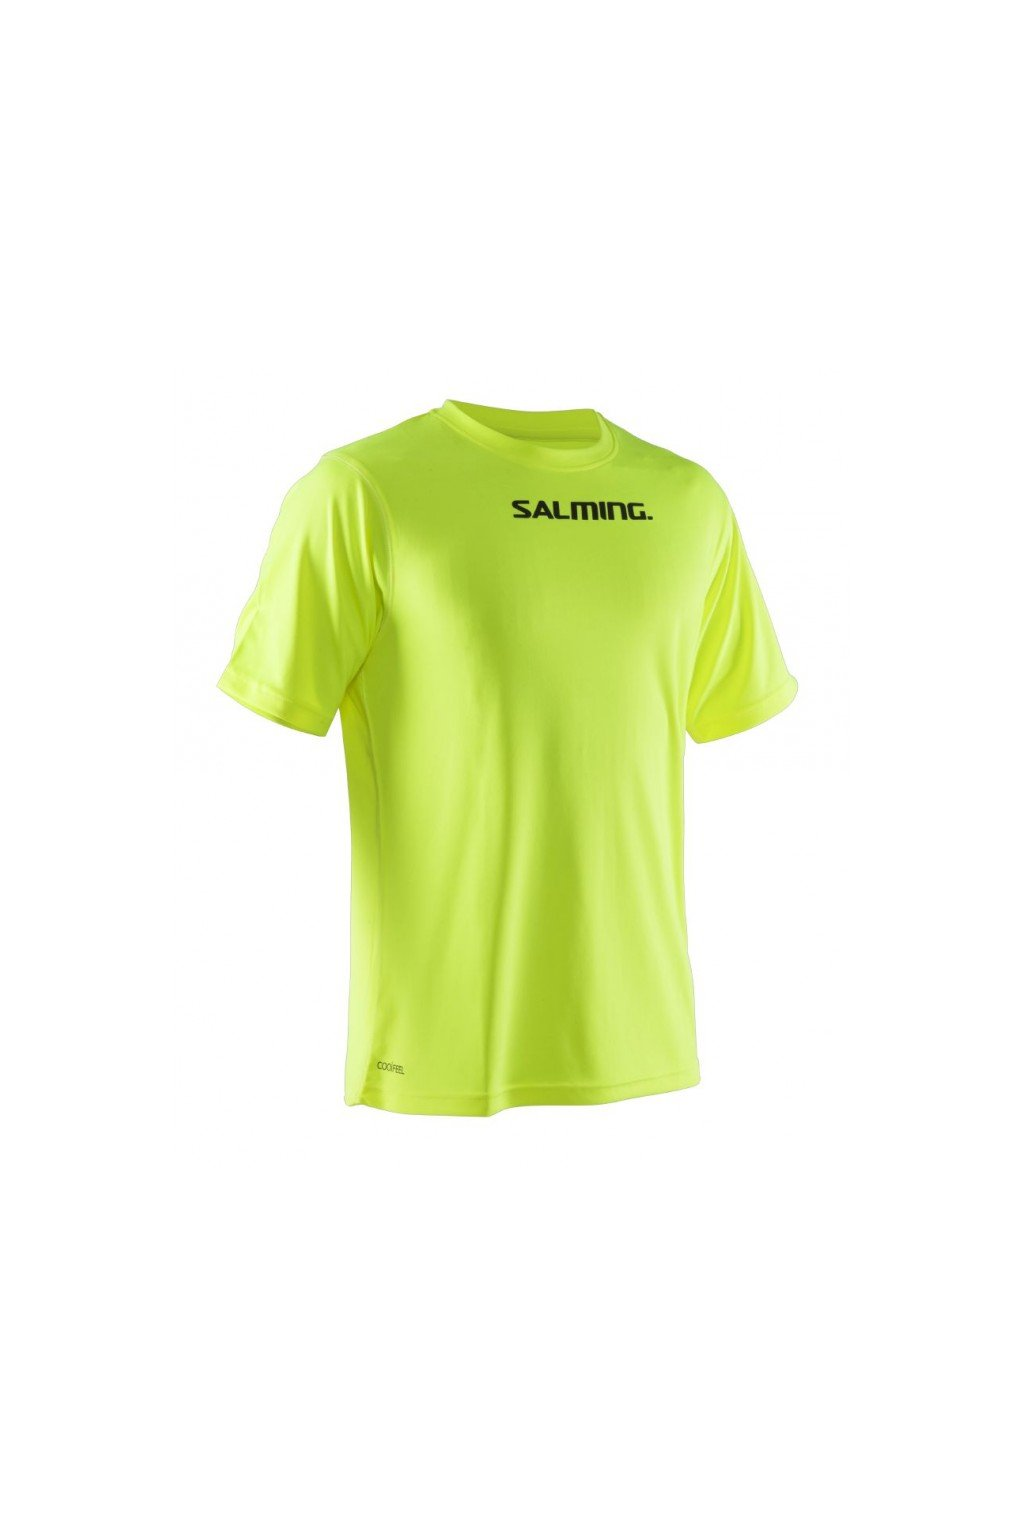 salming focus tee safety yellow xxl